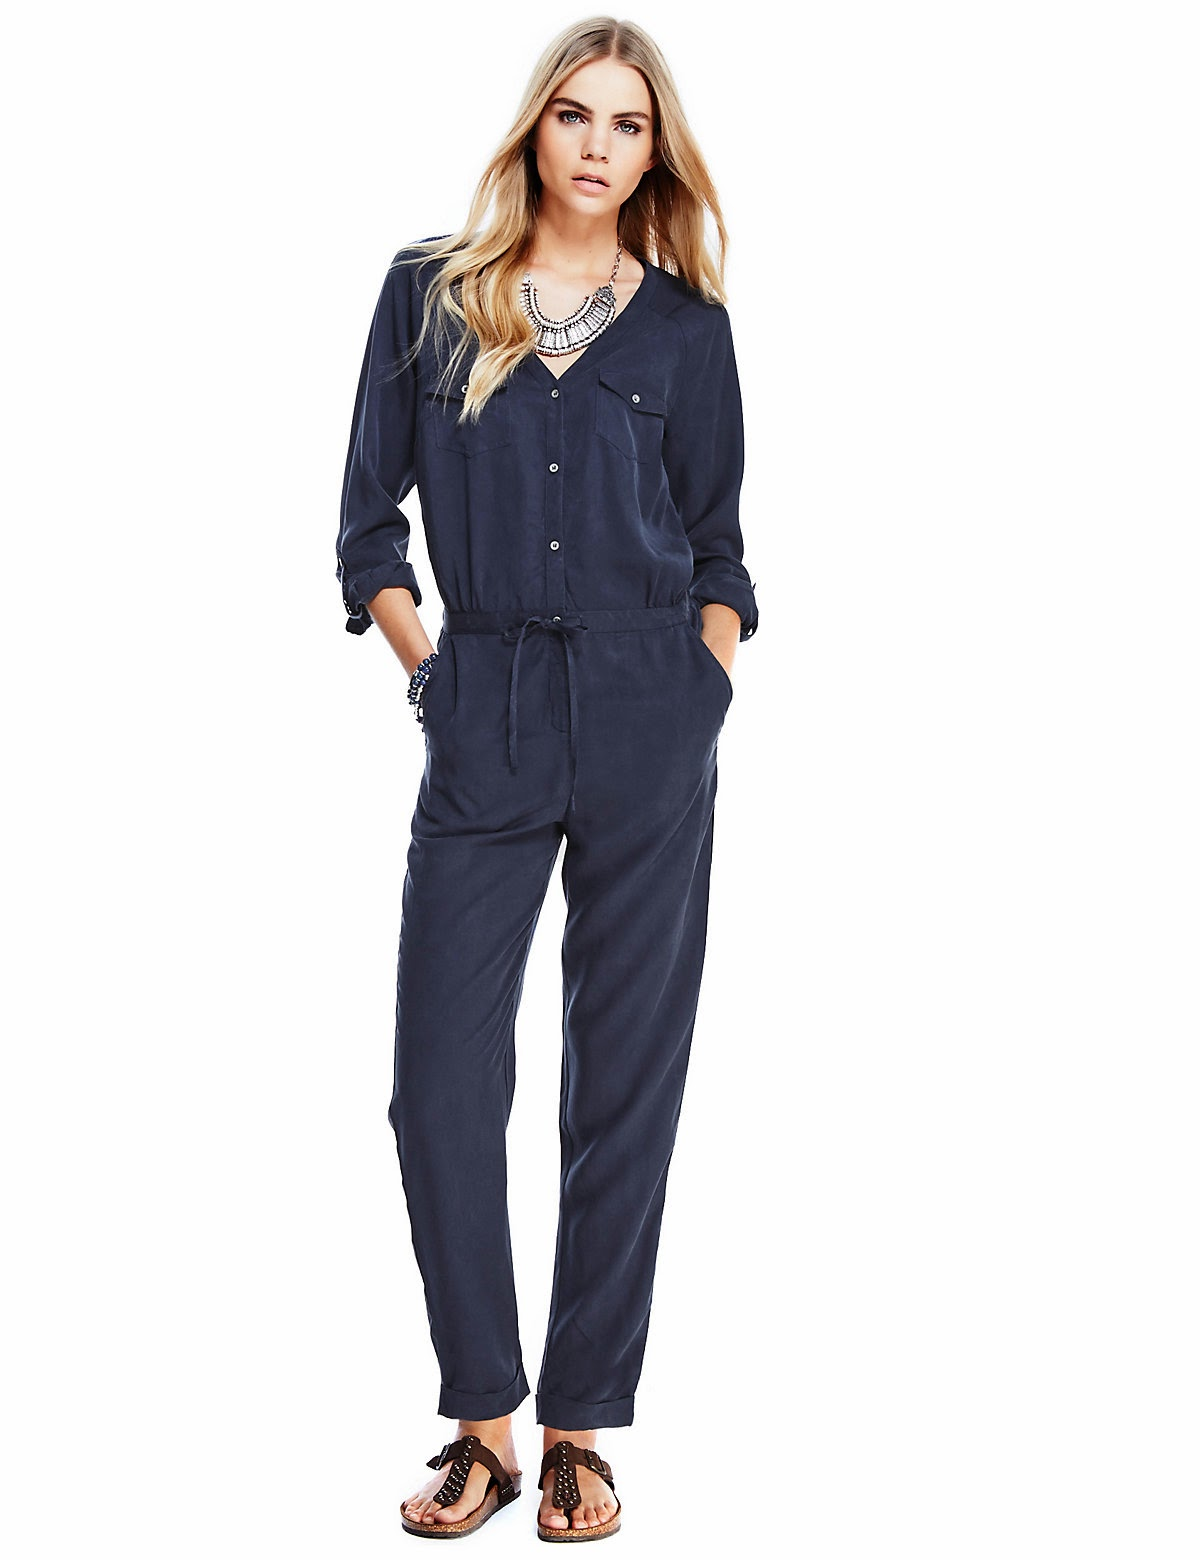 M&S Indigo denim jumpsuit